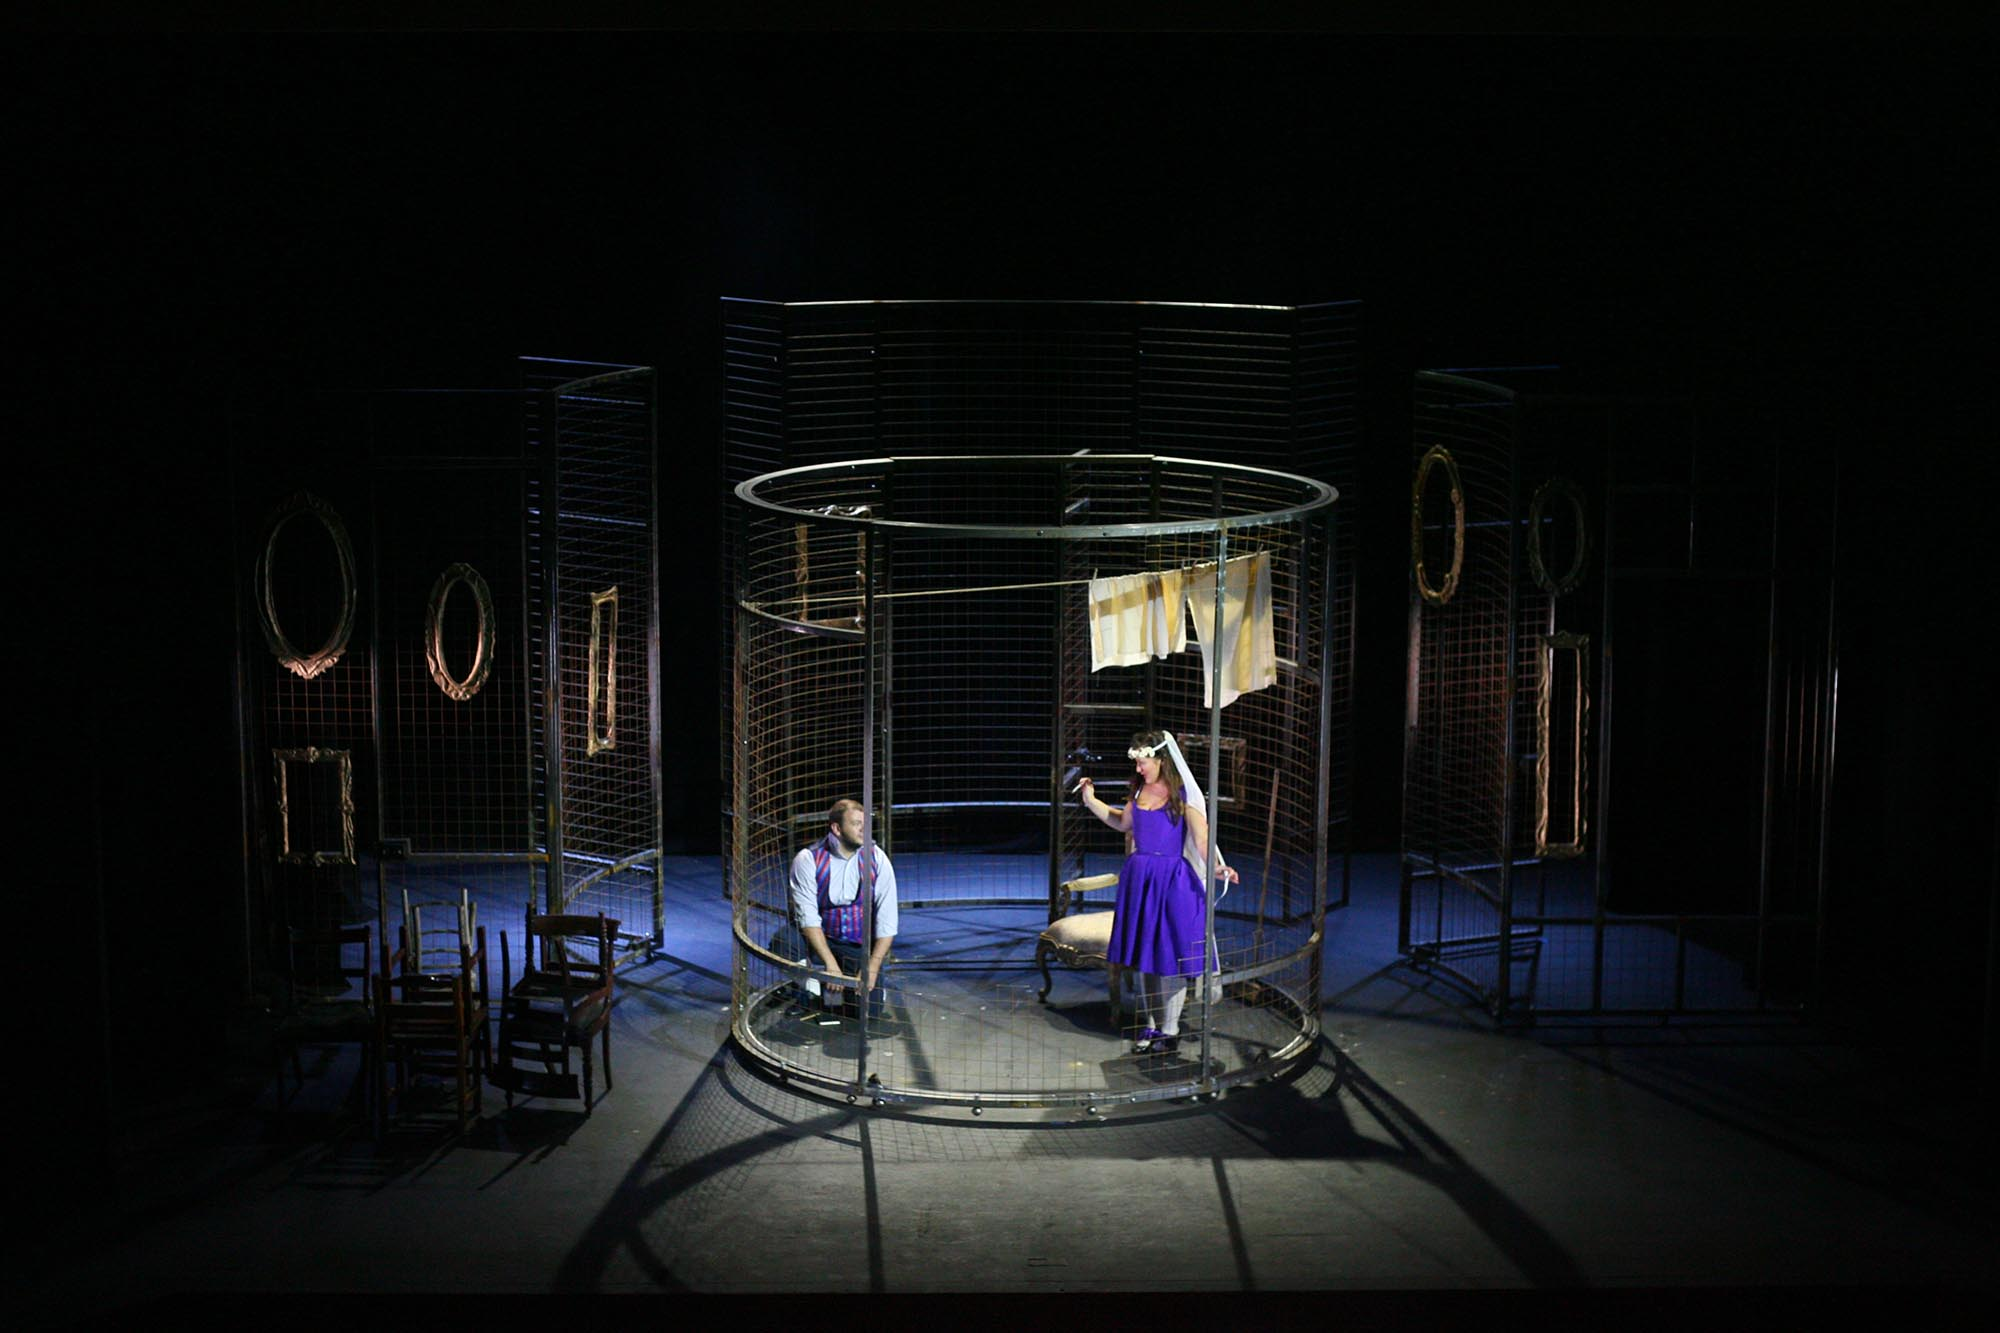 Le-nozze-di-Figaro-opera-directed-by-Jacopo-Spirei-in-London-1